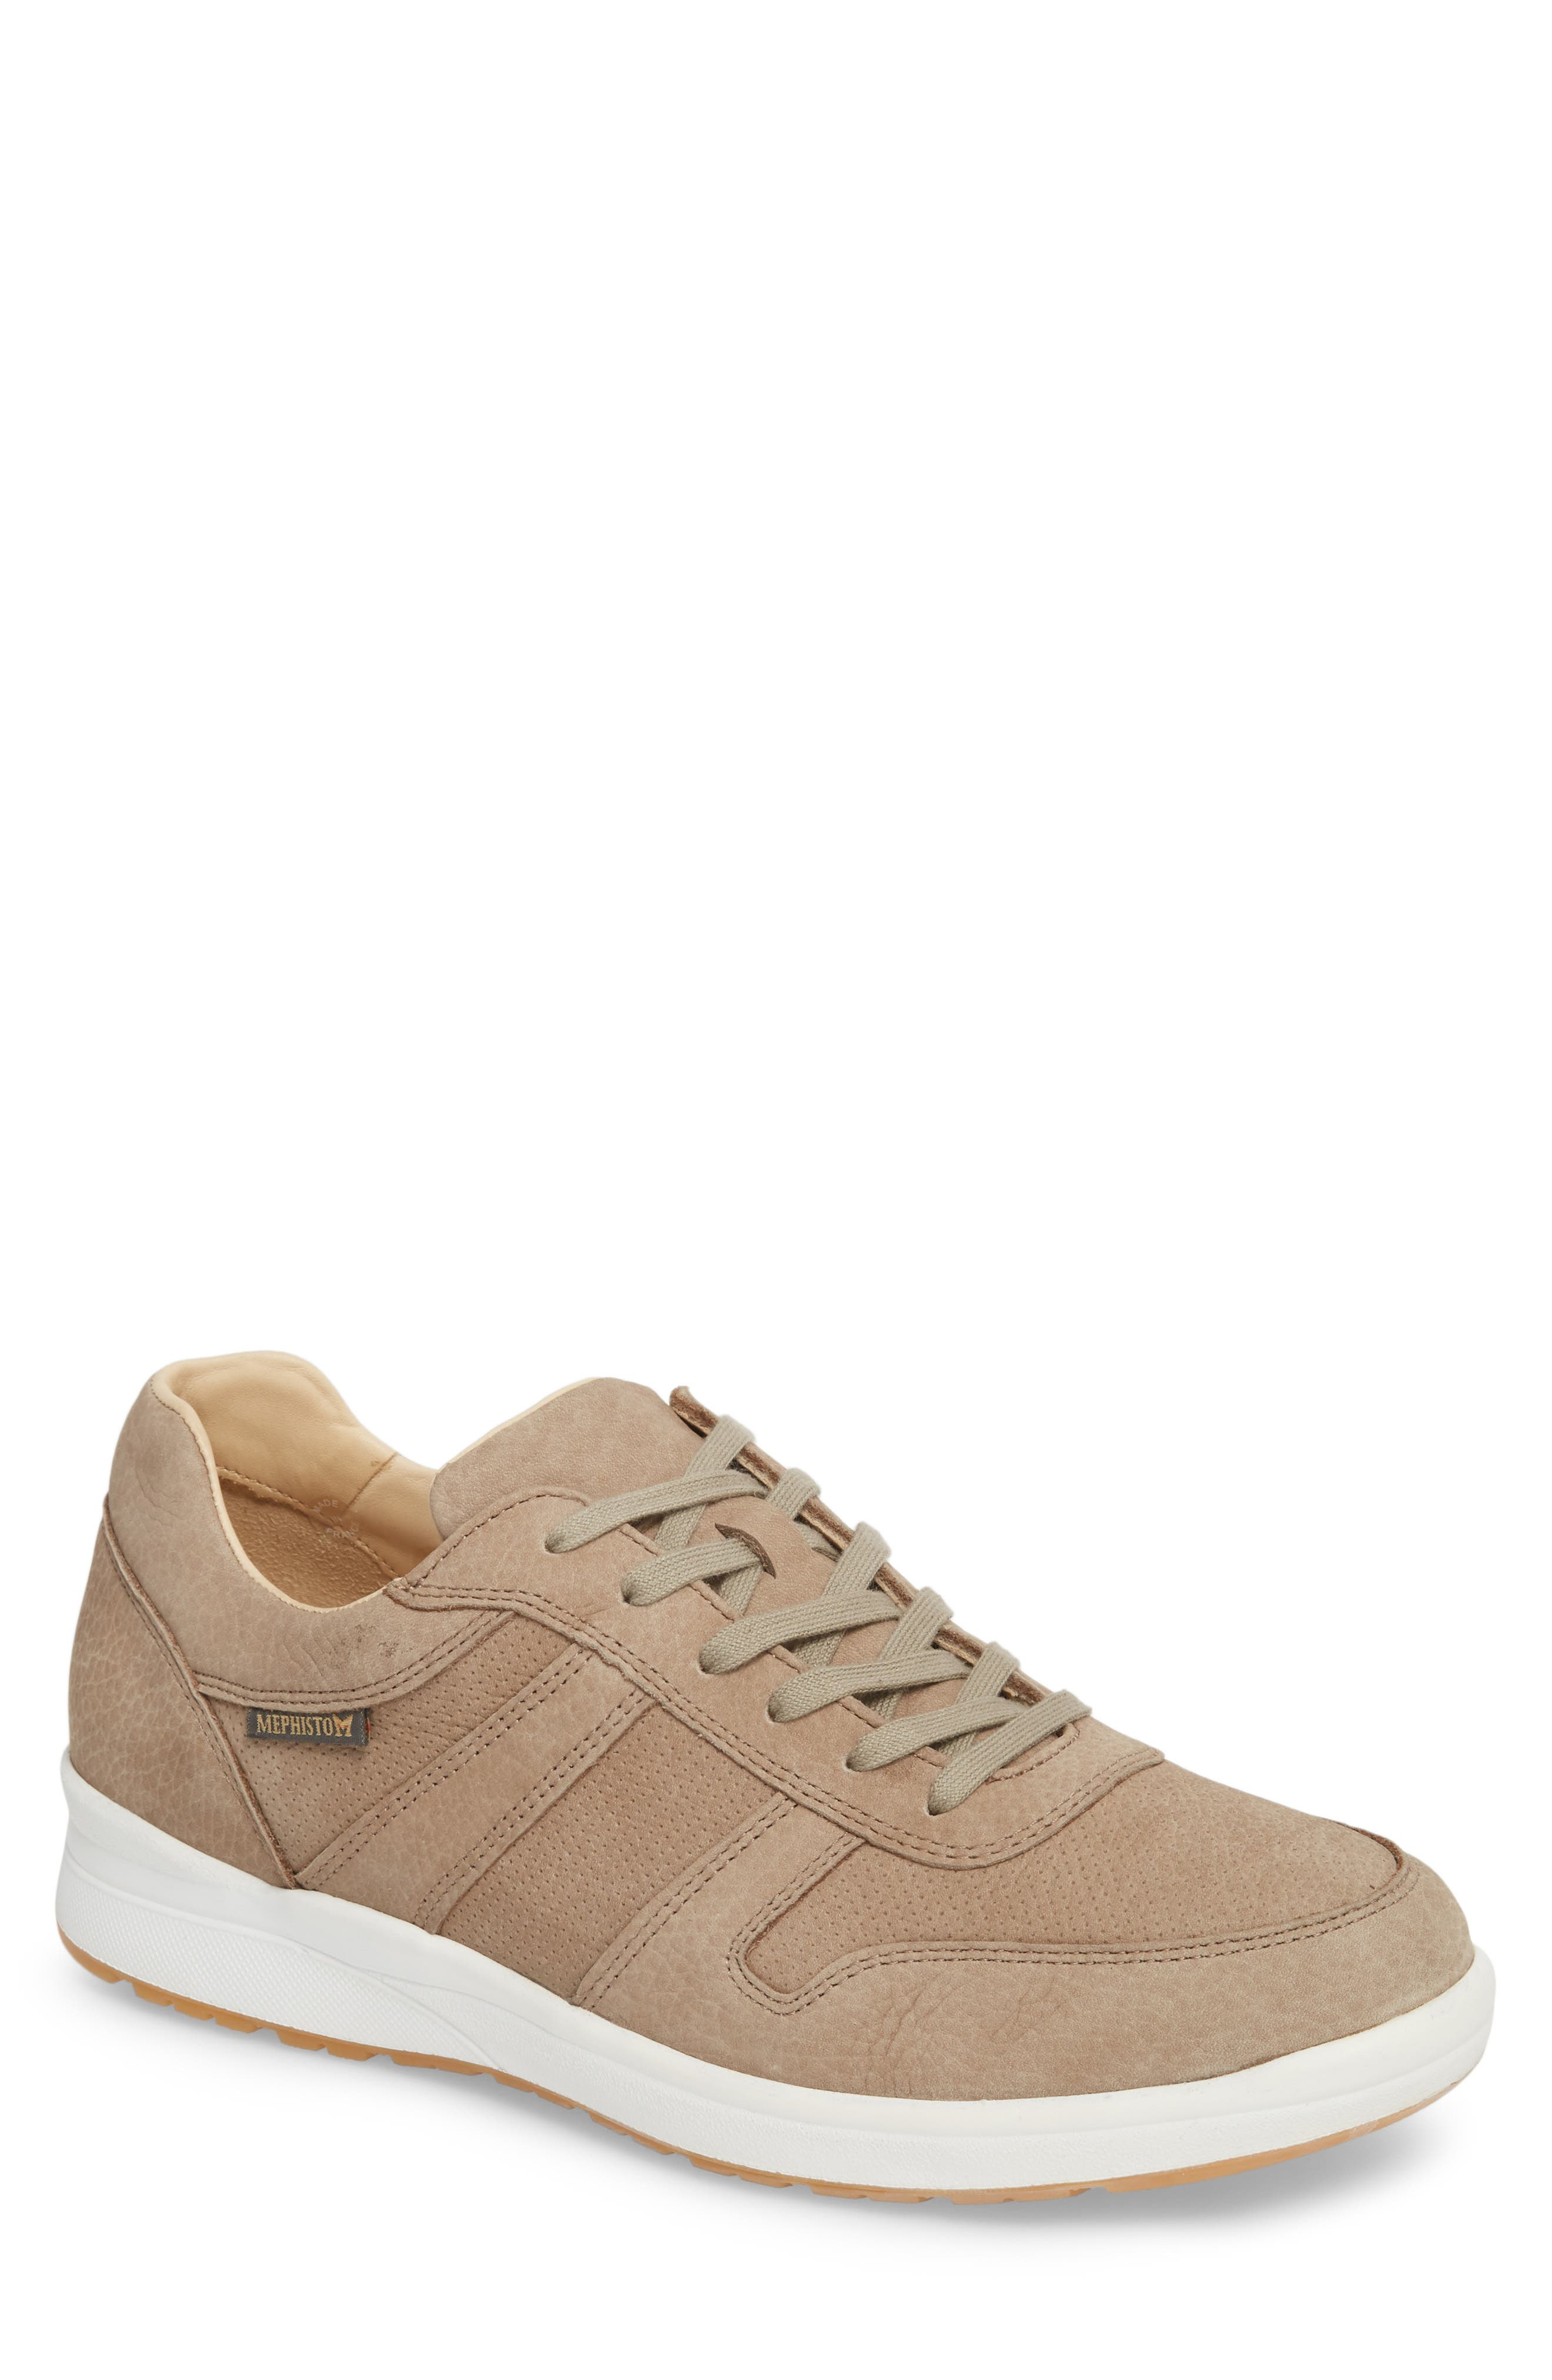 Vito Perforated Sneaker,                         Main,                         color, 281